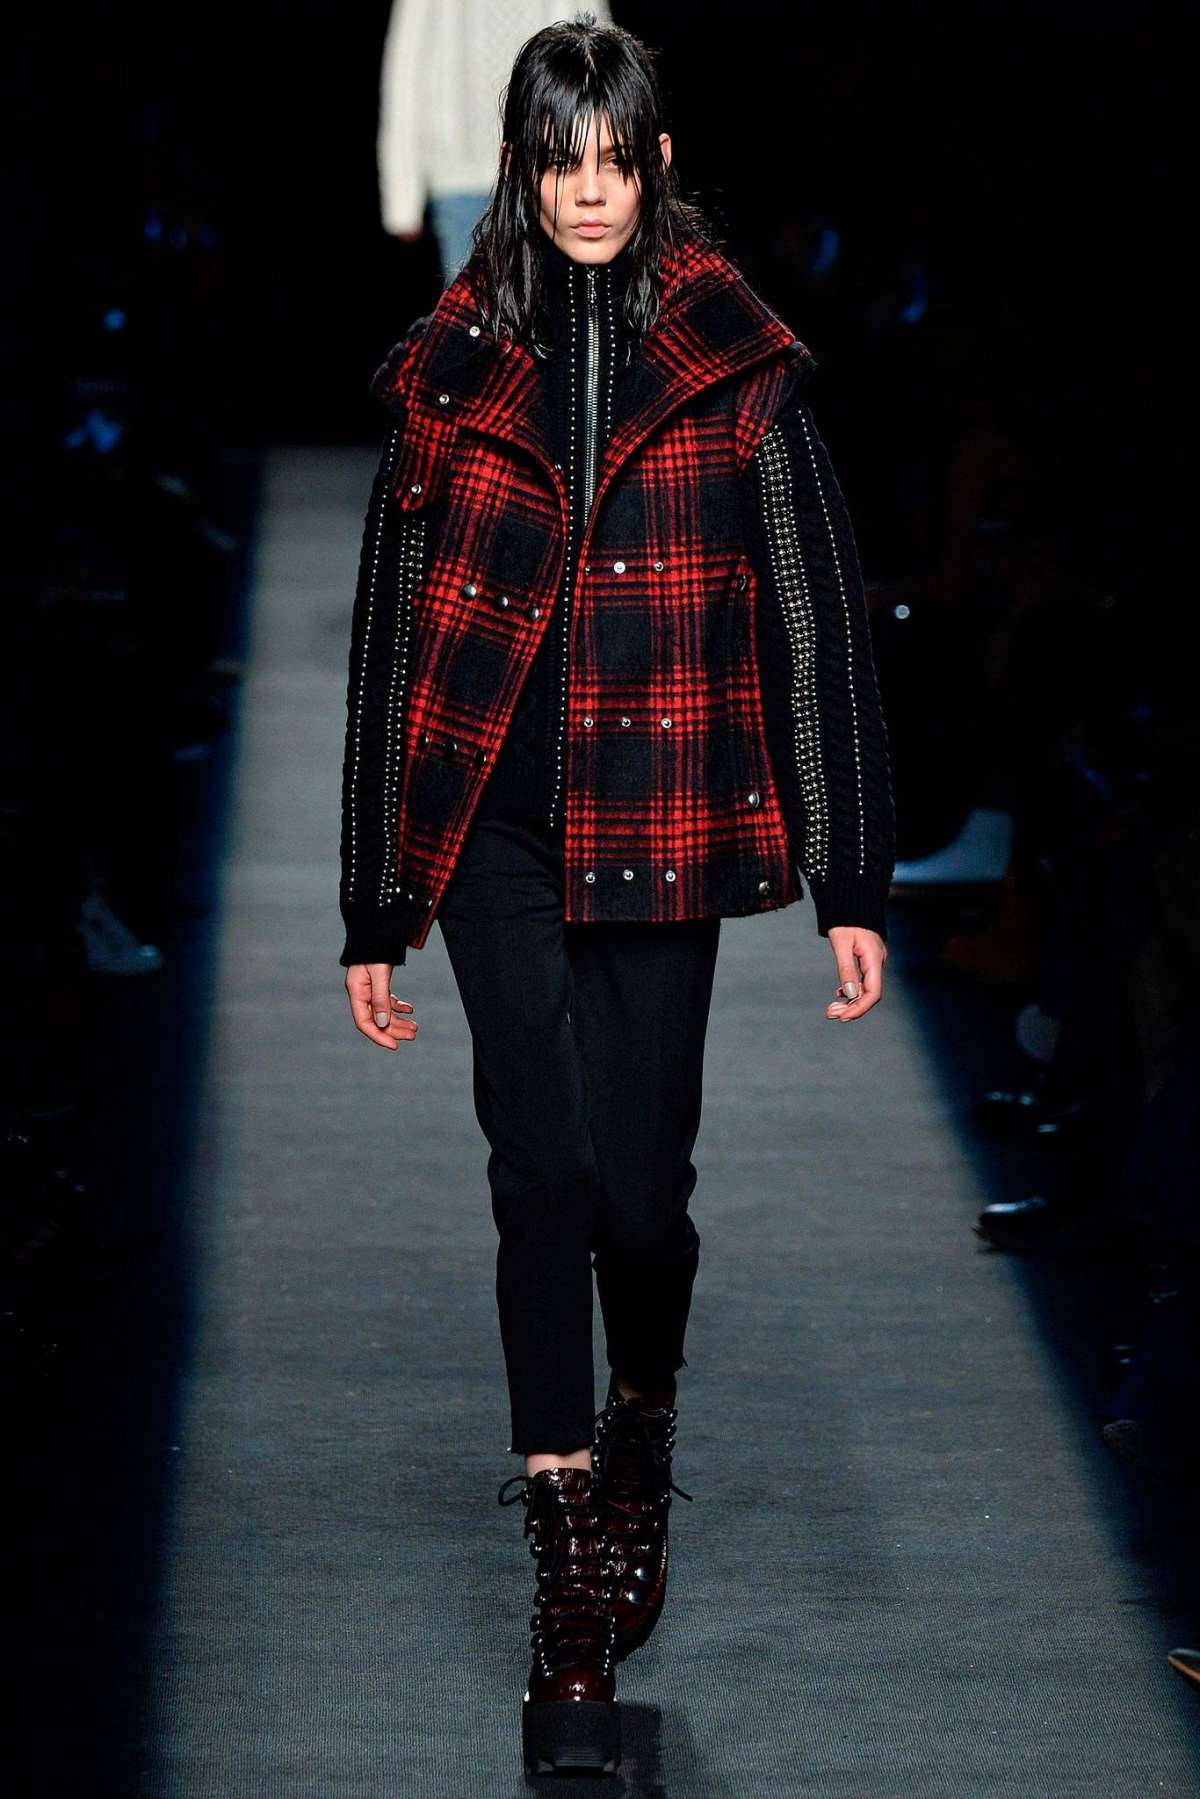 Punk style by Alexander Wang